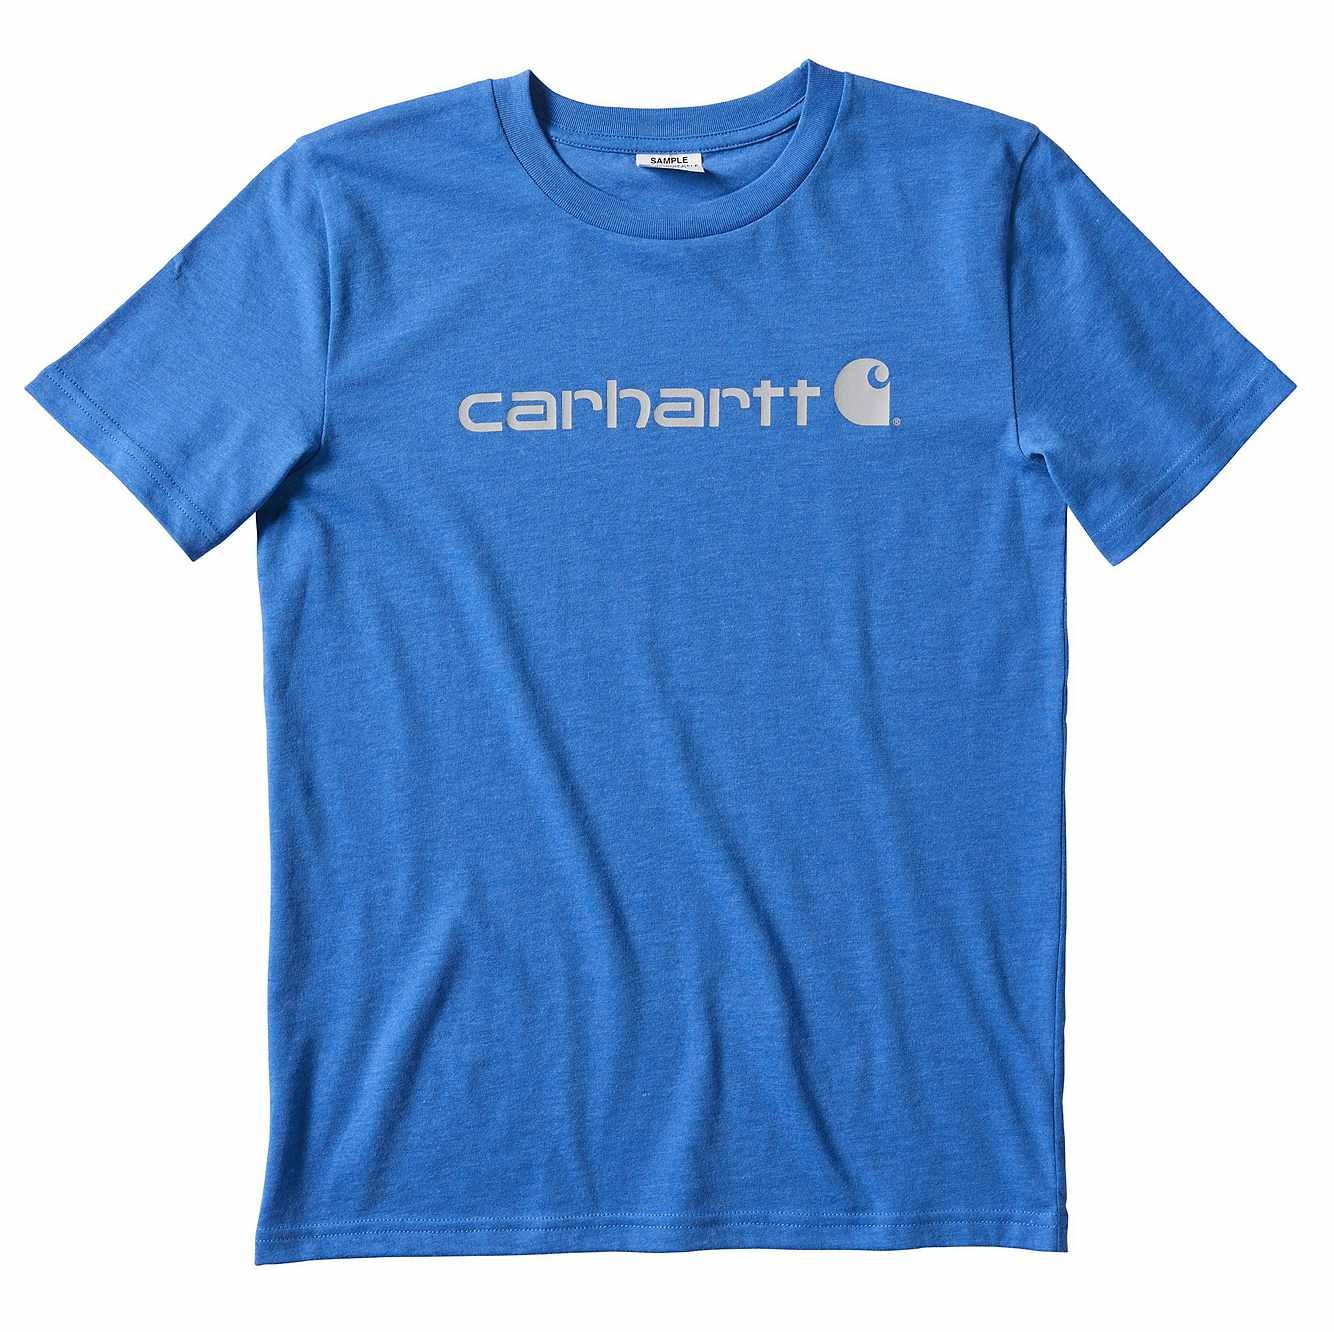 Picture of Carhartt Logo T-Shirt in Palace Blue